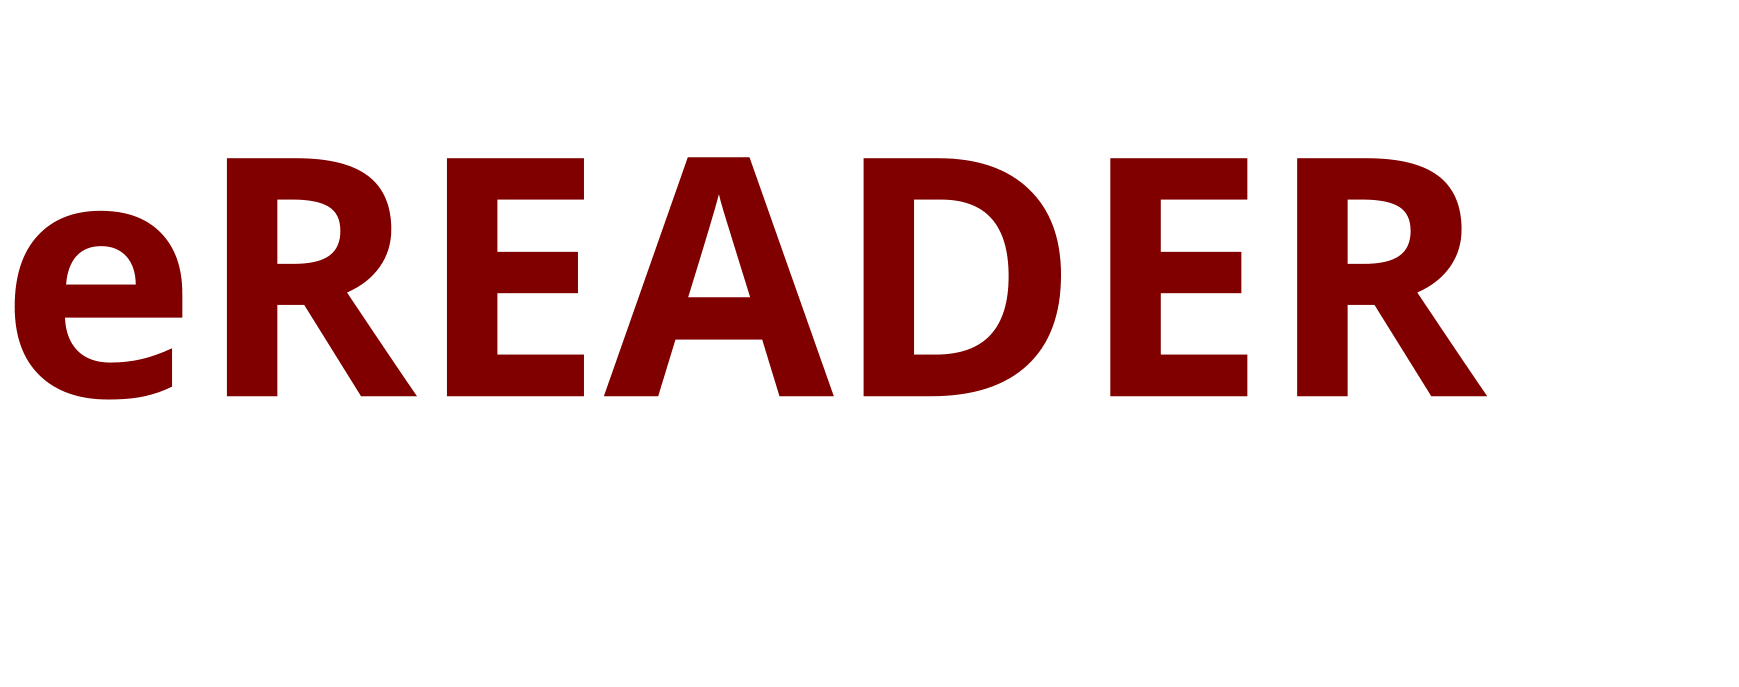 eReader - The eFORMz Document Viewer